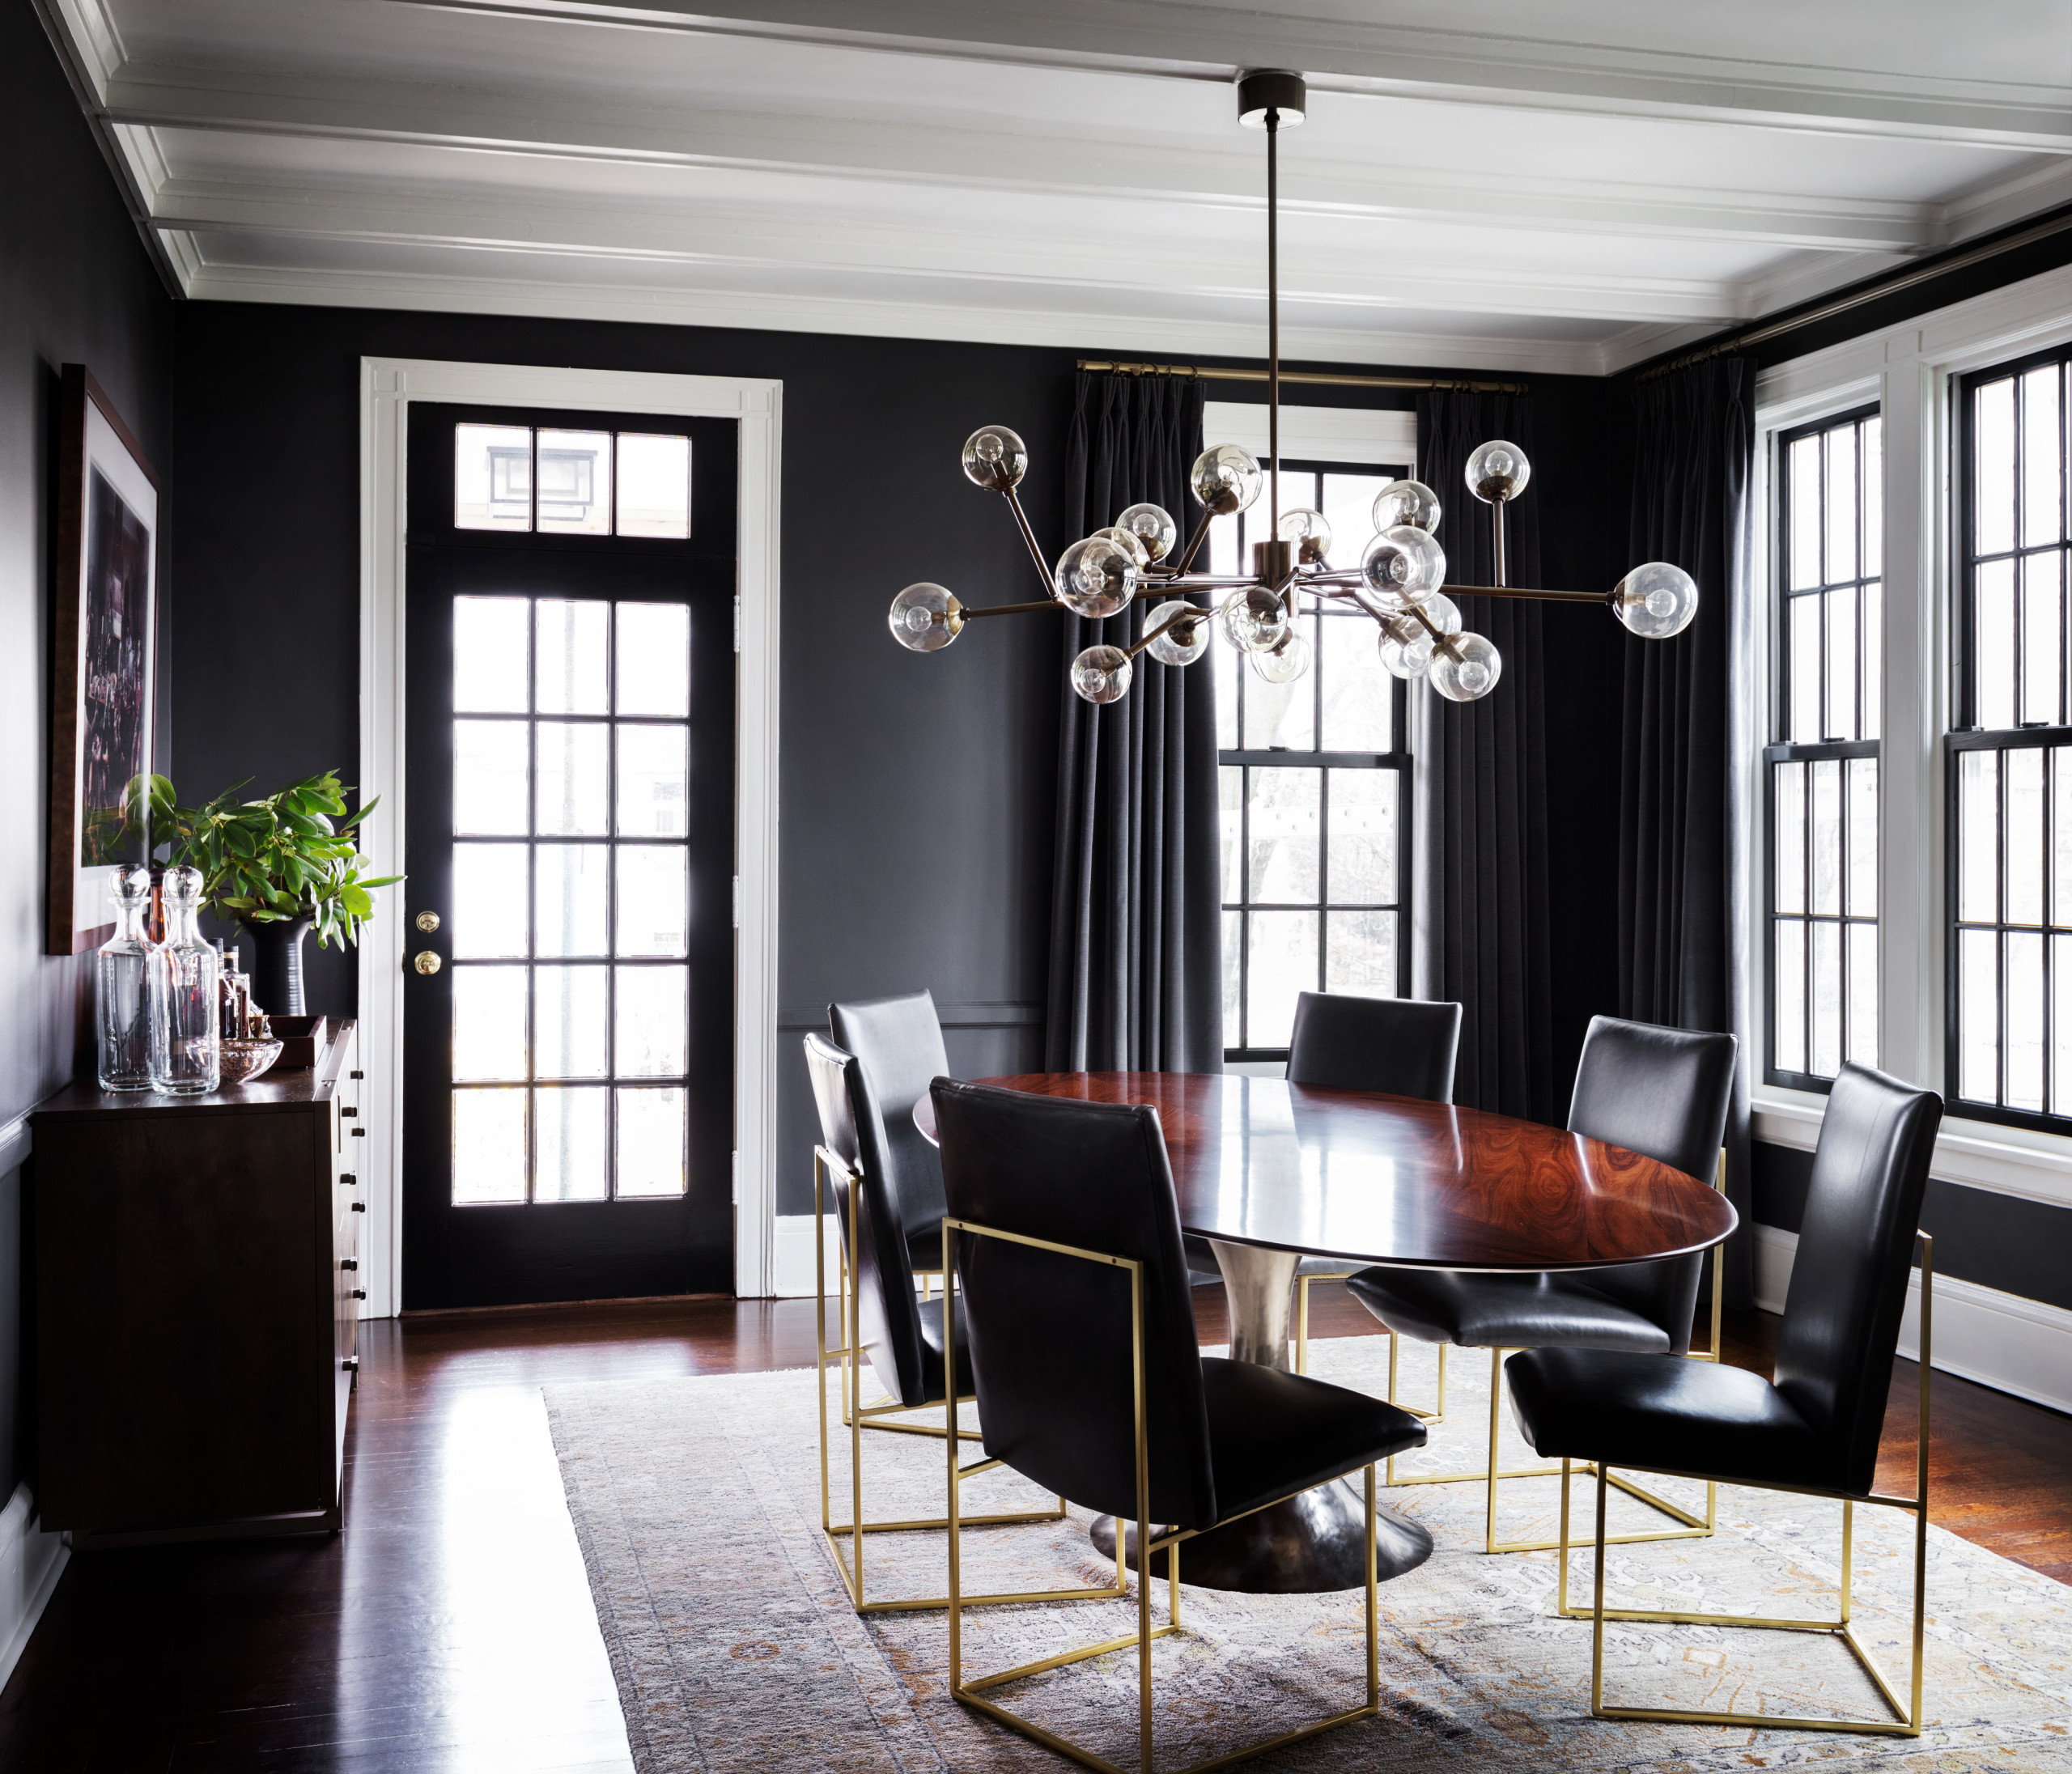 75 Black Dining Room Pictures Ideas, Black Dining Room